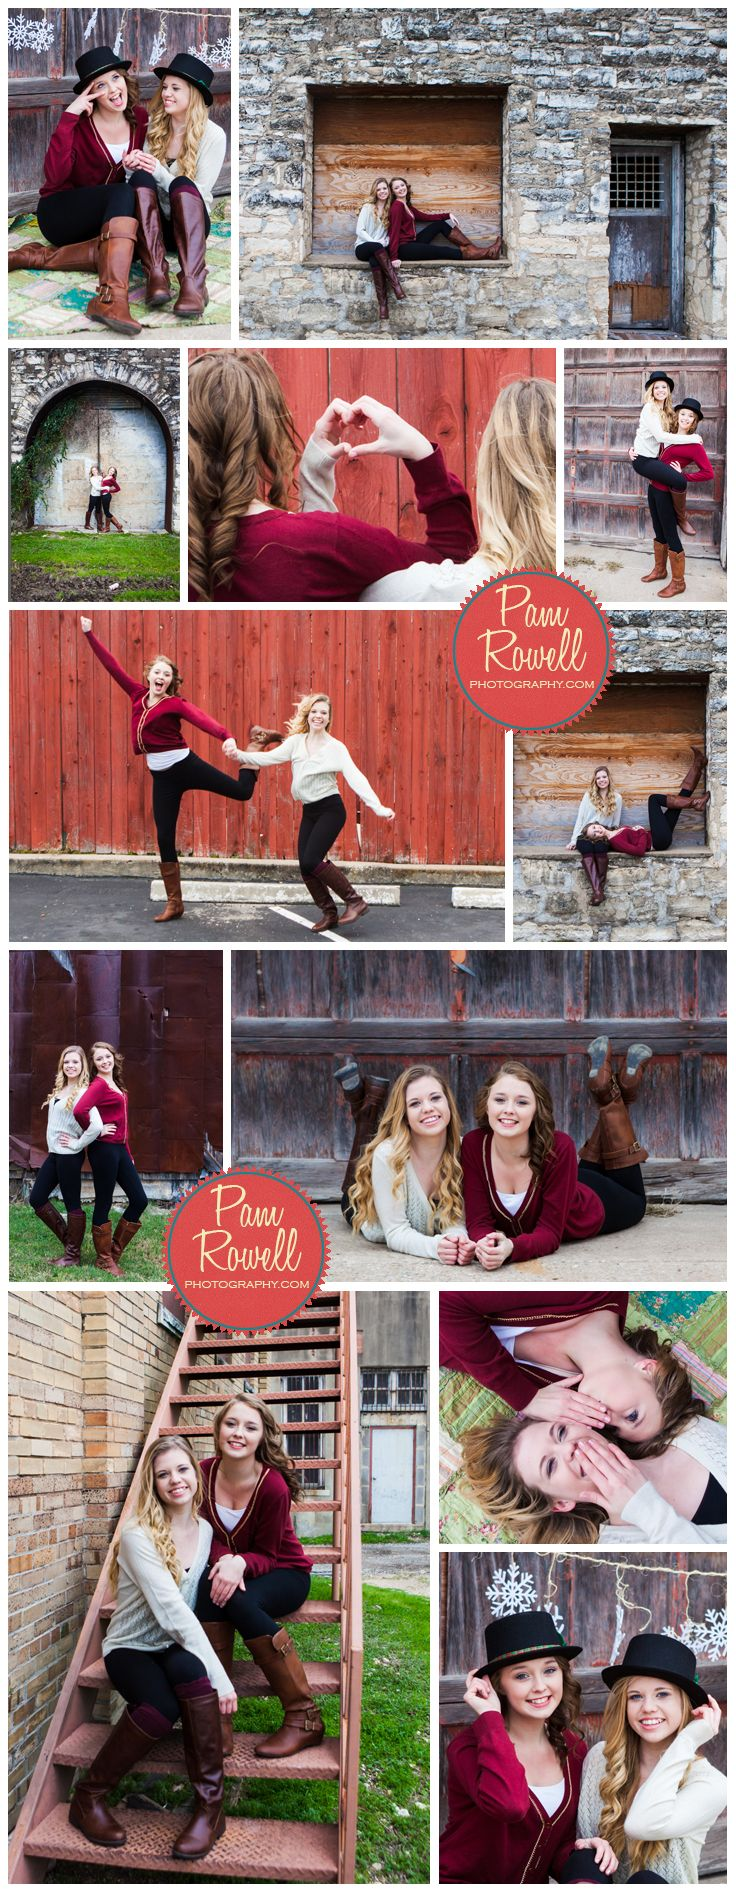 A few months ago I did a Best Friends Photo Session on Instagram. Kye and her friend Katie won one of the free sessions! We were trying to get them done before Kye left to go out of town, so we picked (Best Friend)